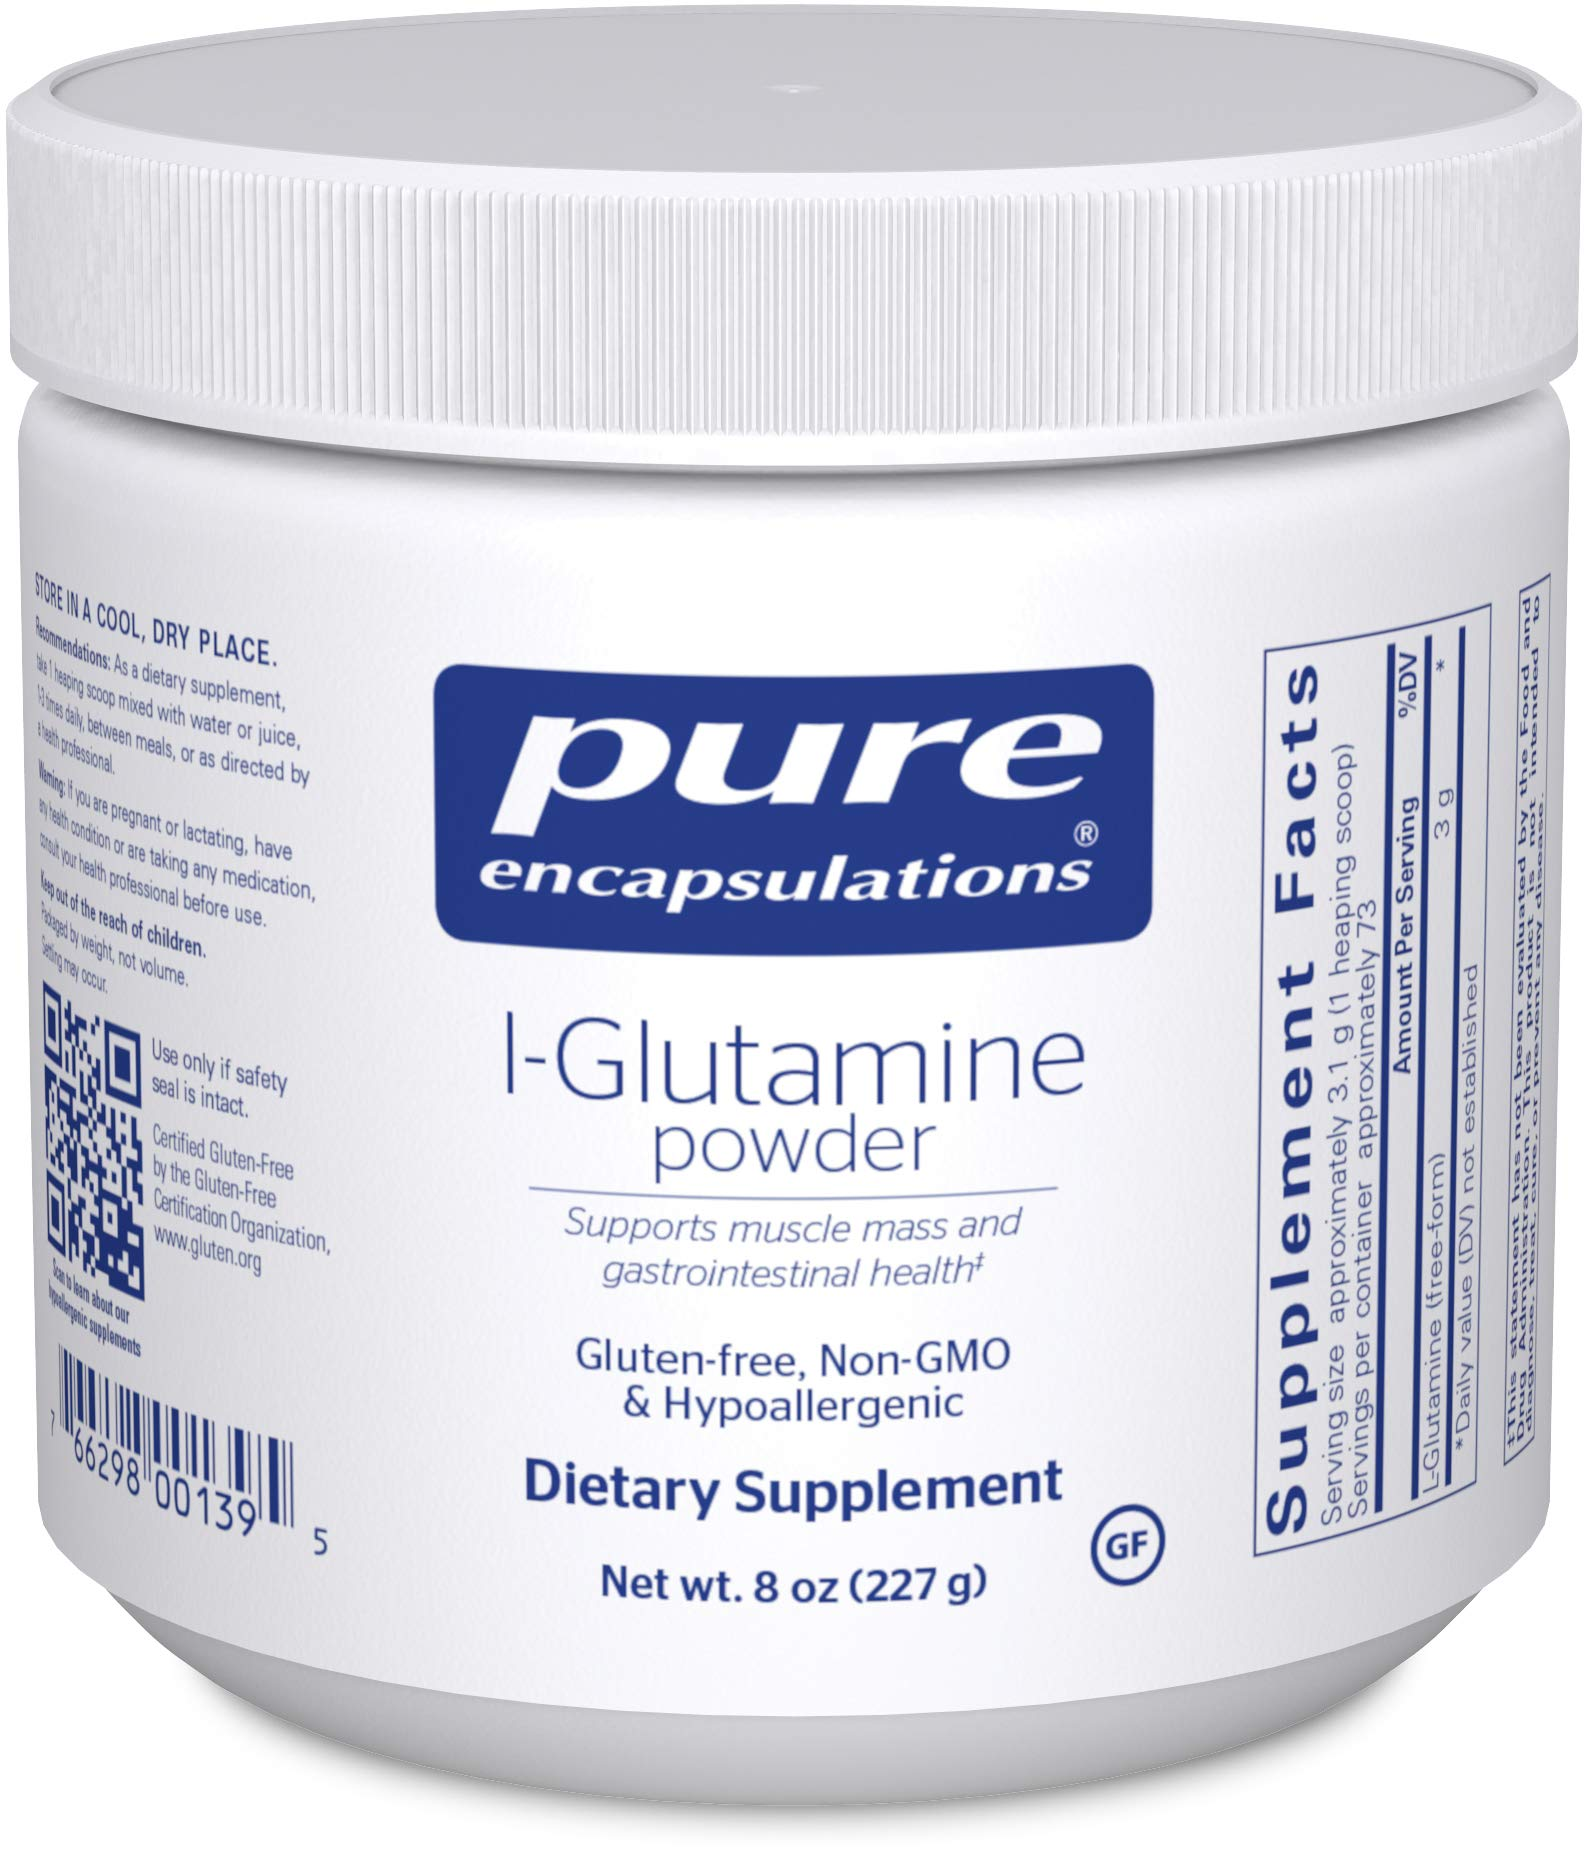 Pure Encapsulations - l-Glutamine Powder - Hypoallergenic Supplement Supports Muscle Mass and Gastrointestinal Tract - 8 Ounces